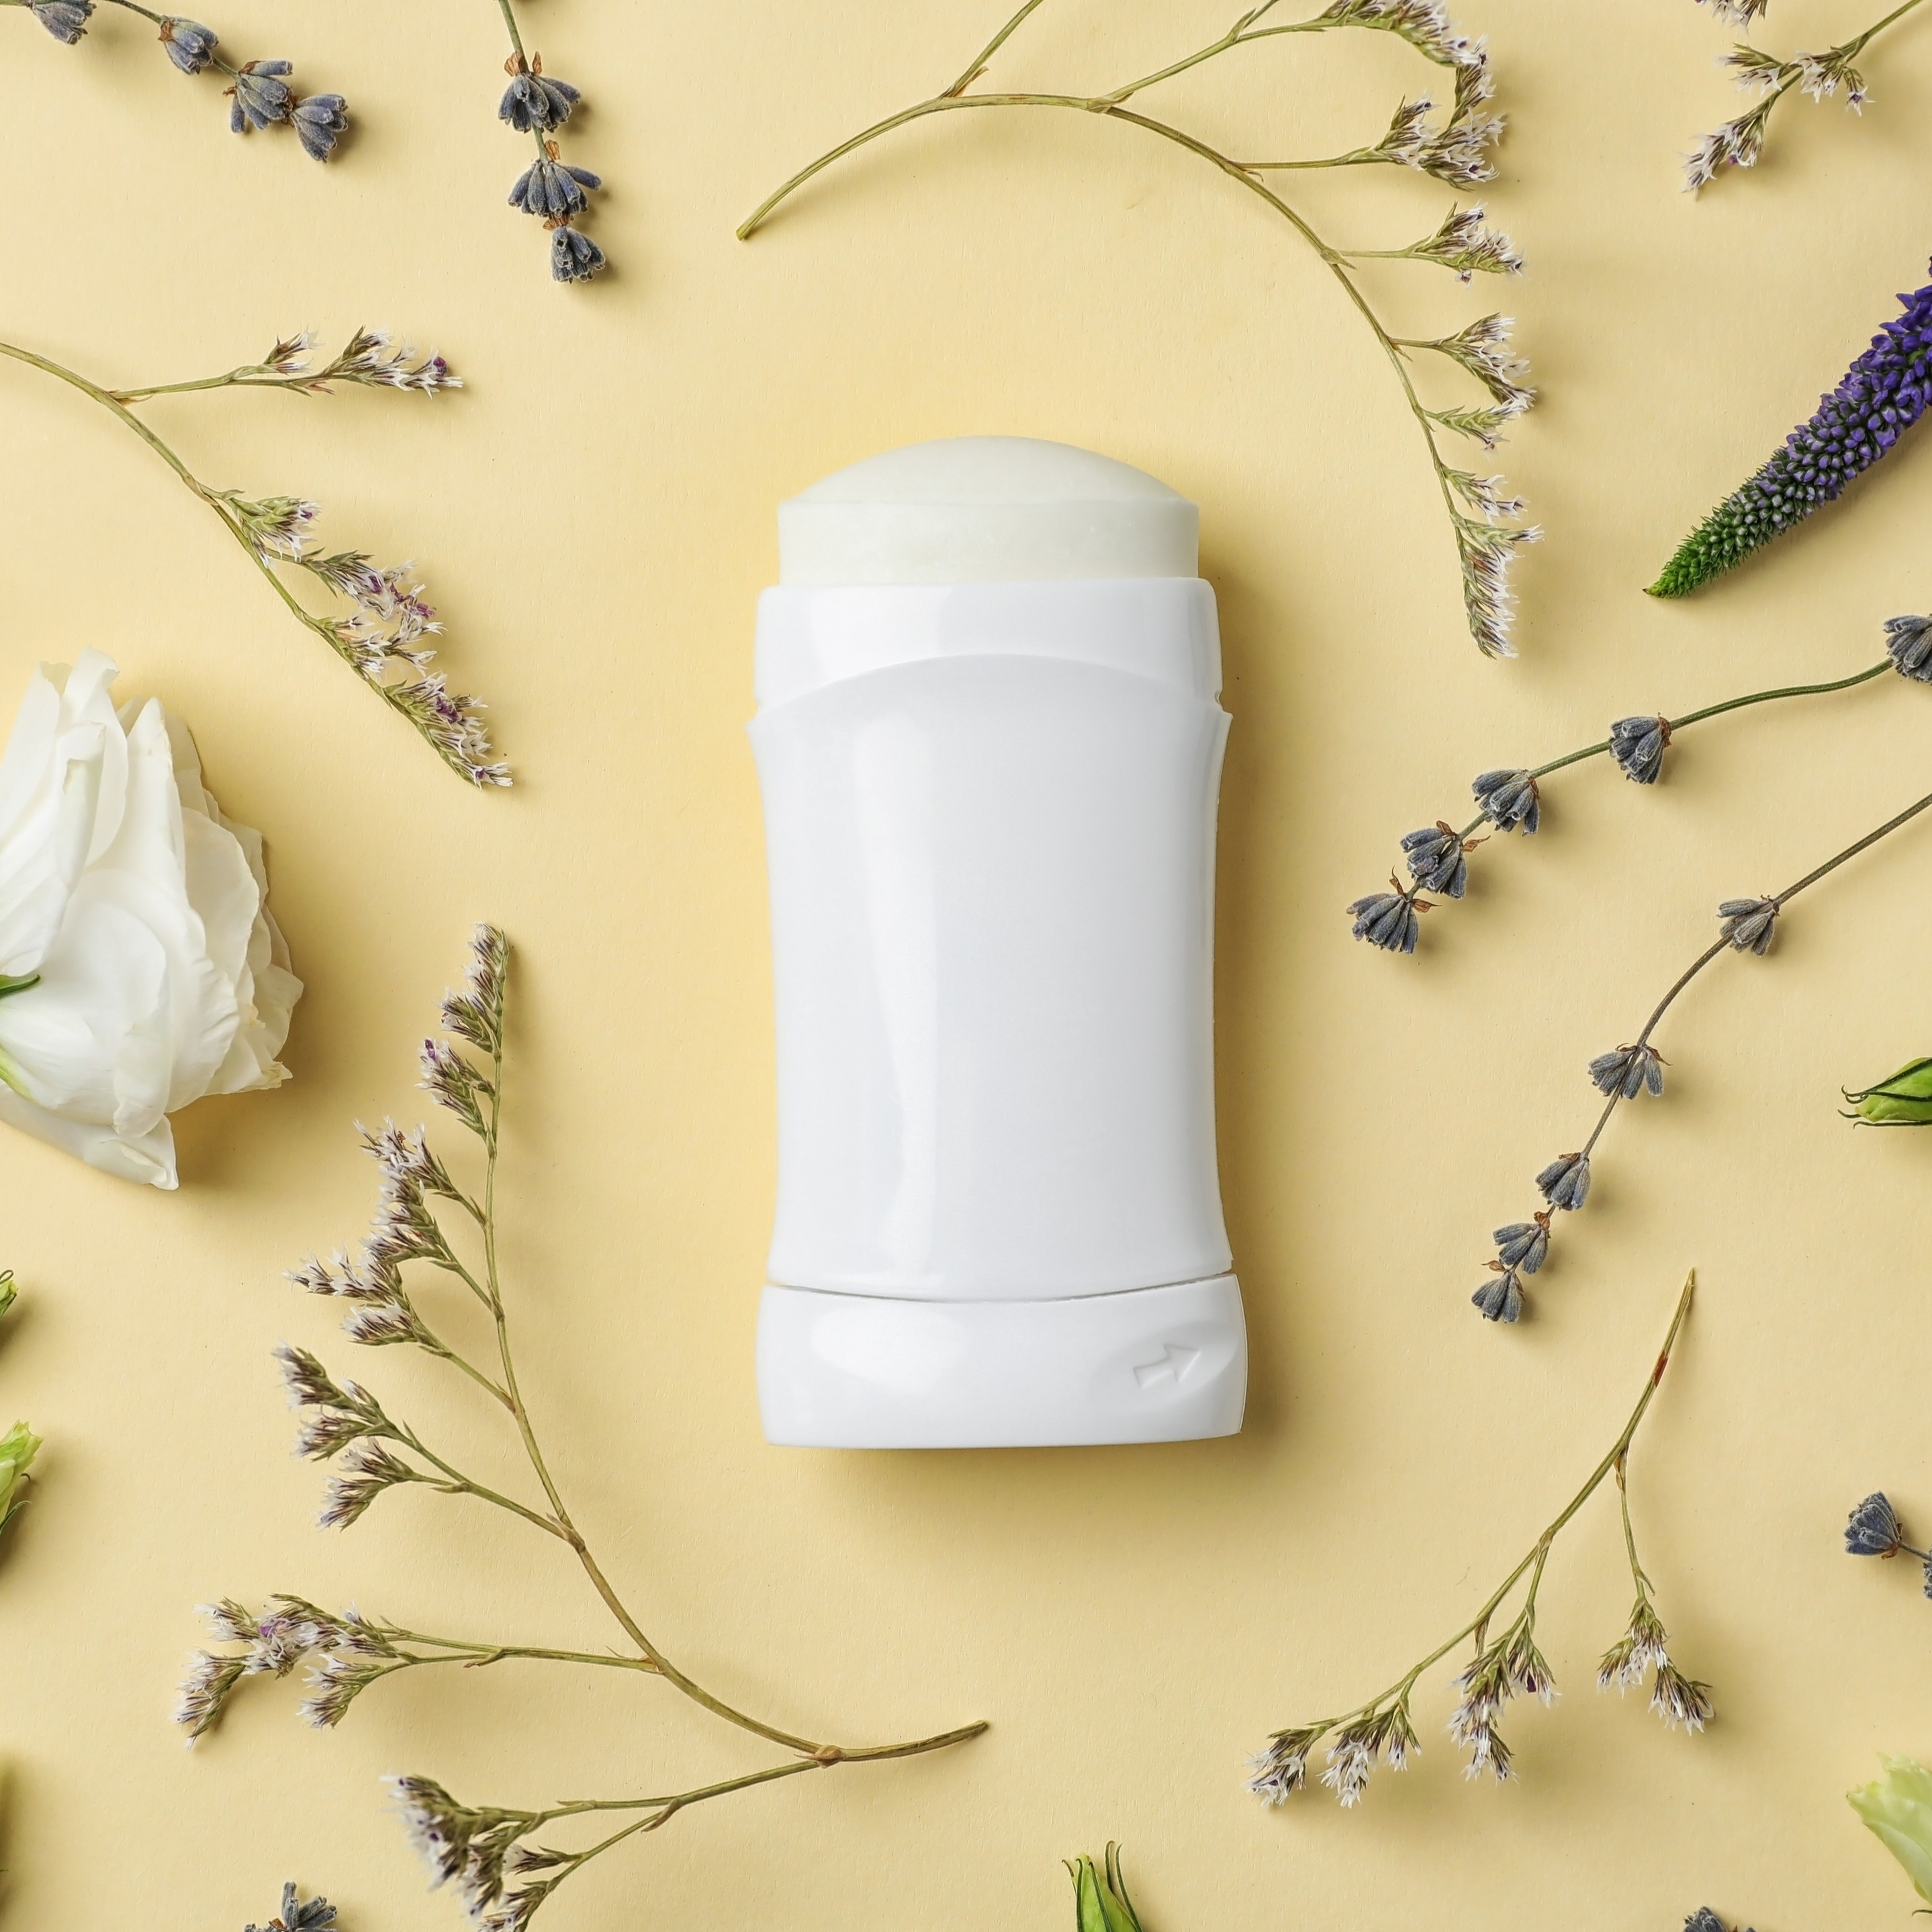 deodorant and flower flatlay - square